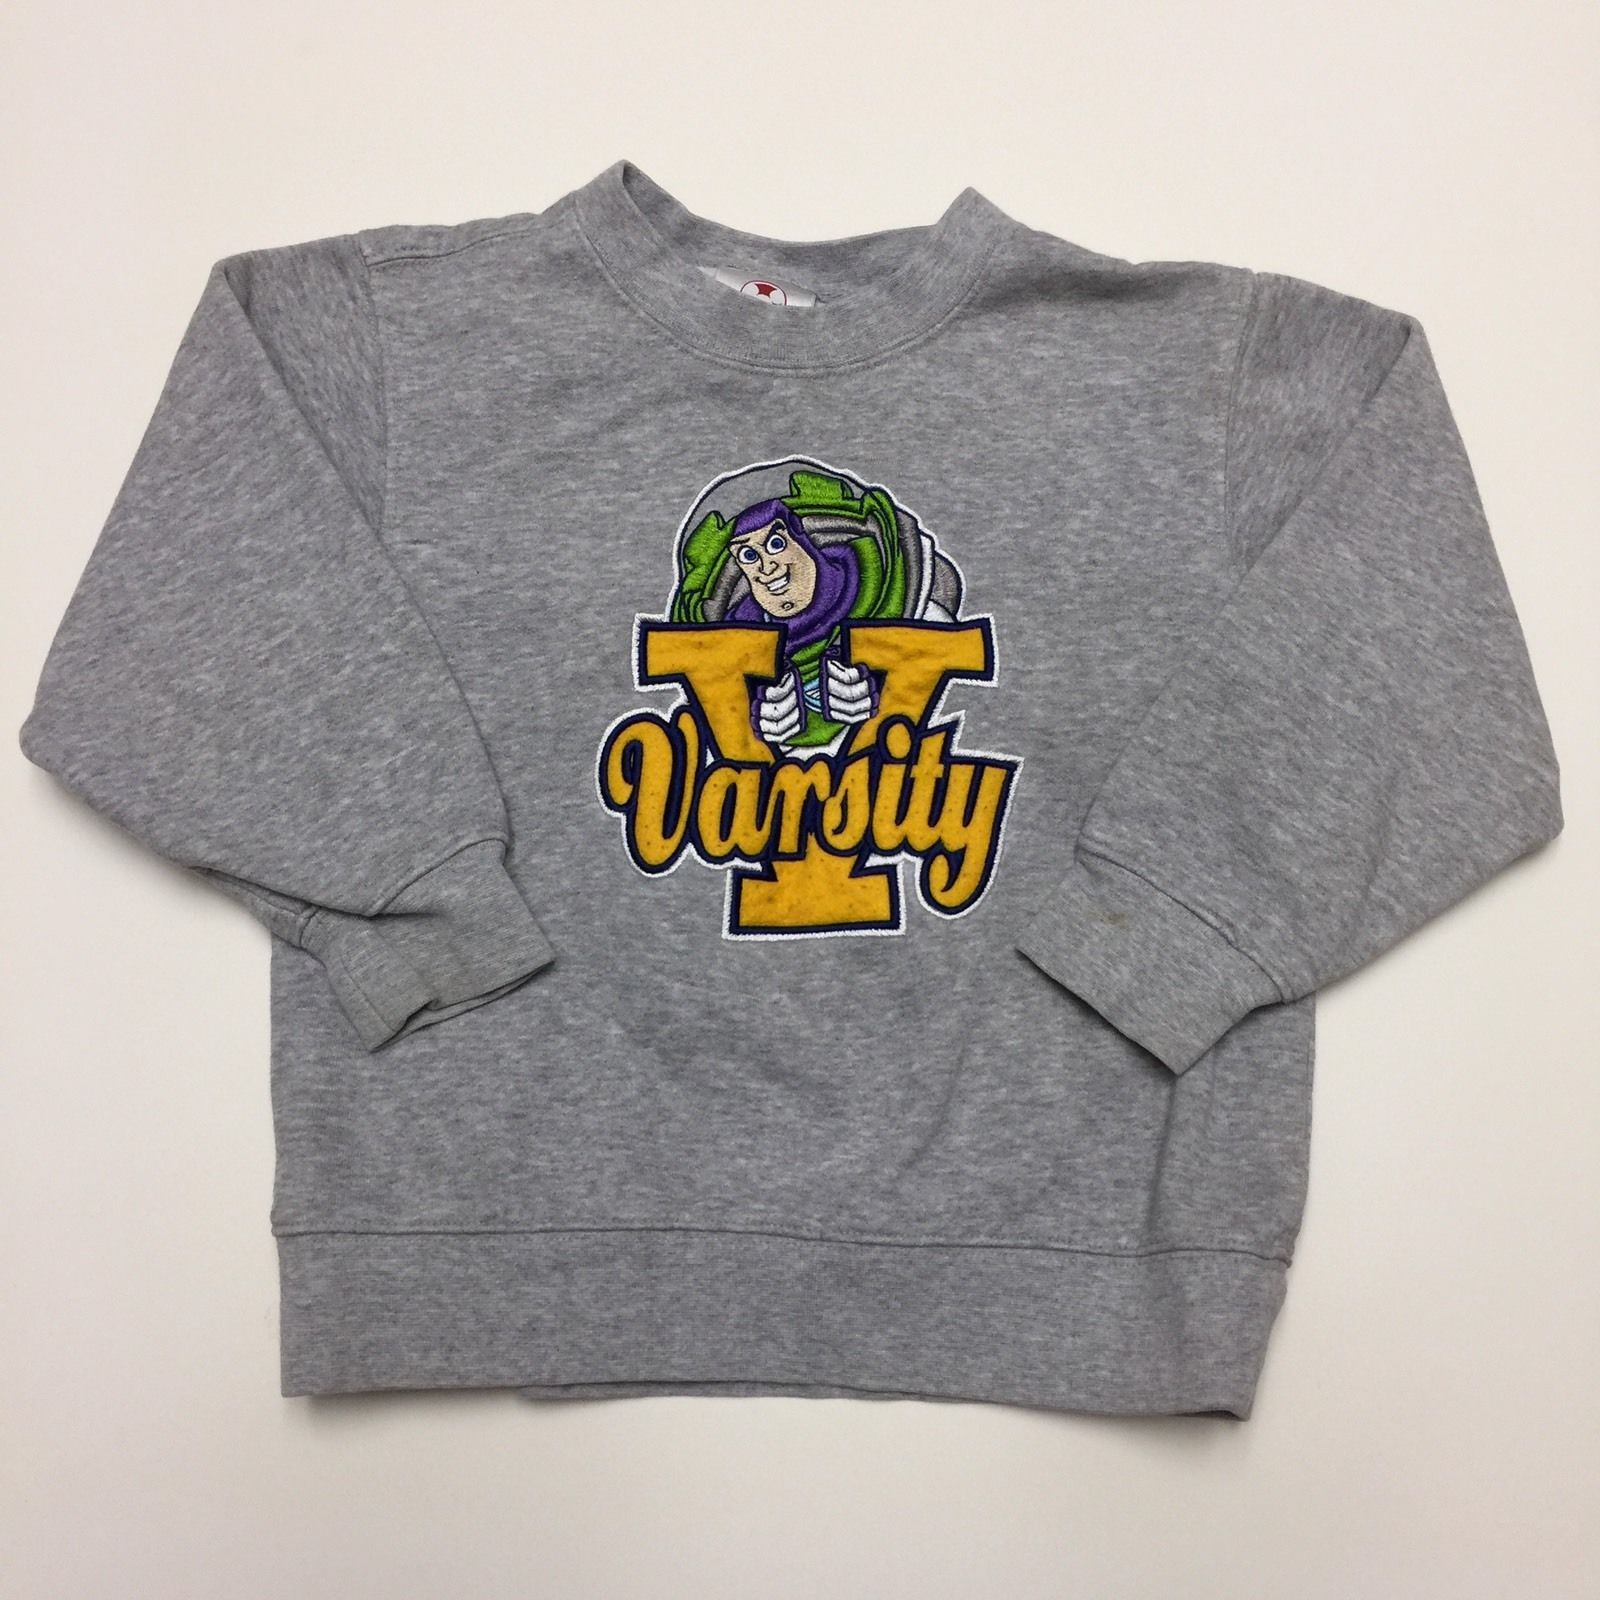 Primary image for Disney Store Buzz Lightyear Varsity Sweatshirt Childs Size 4 XS Gray Toy Story